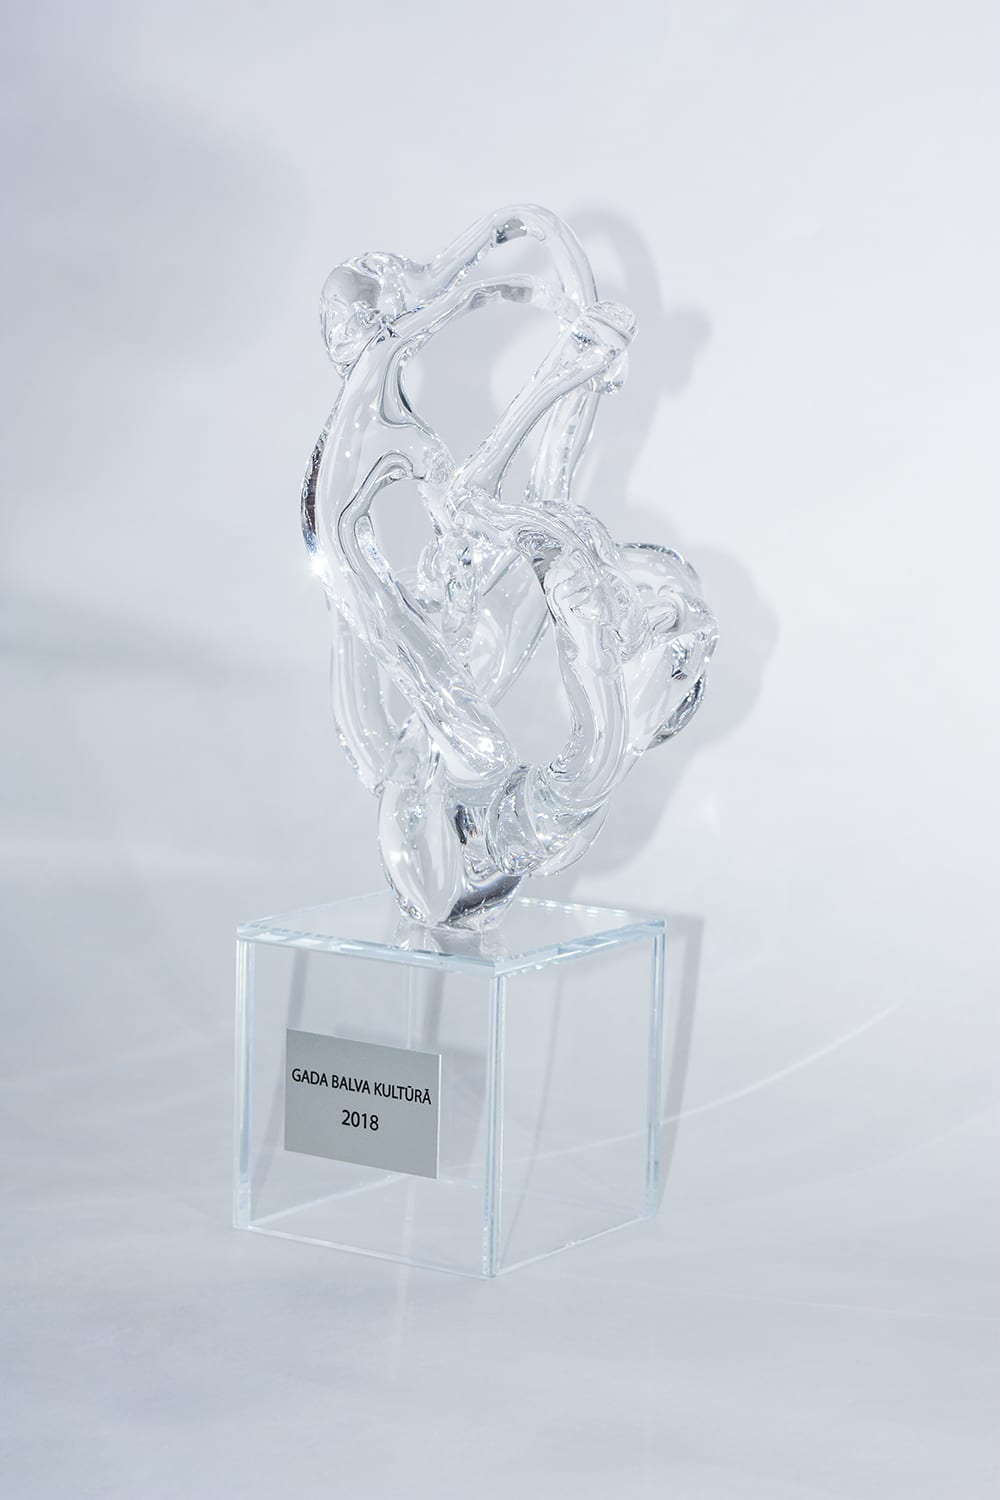 Awards and Trophies from Glass. Annual Culture Award. Glass Point